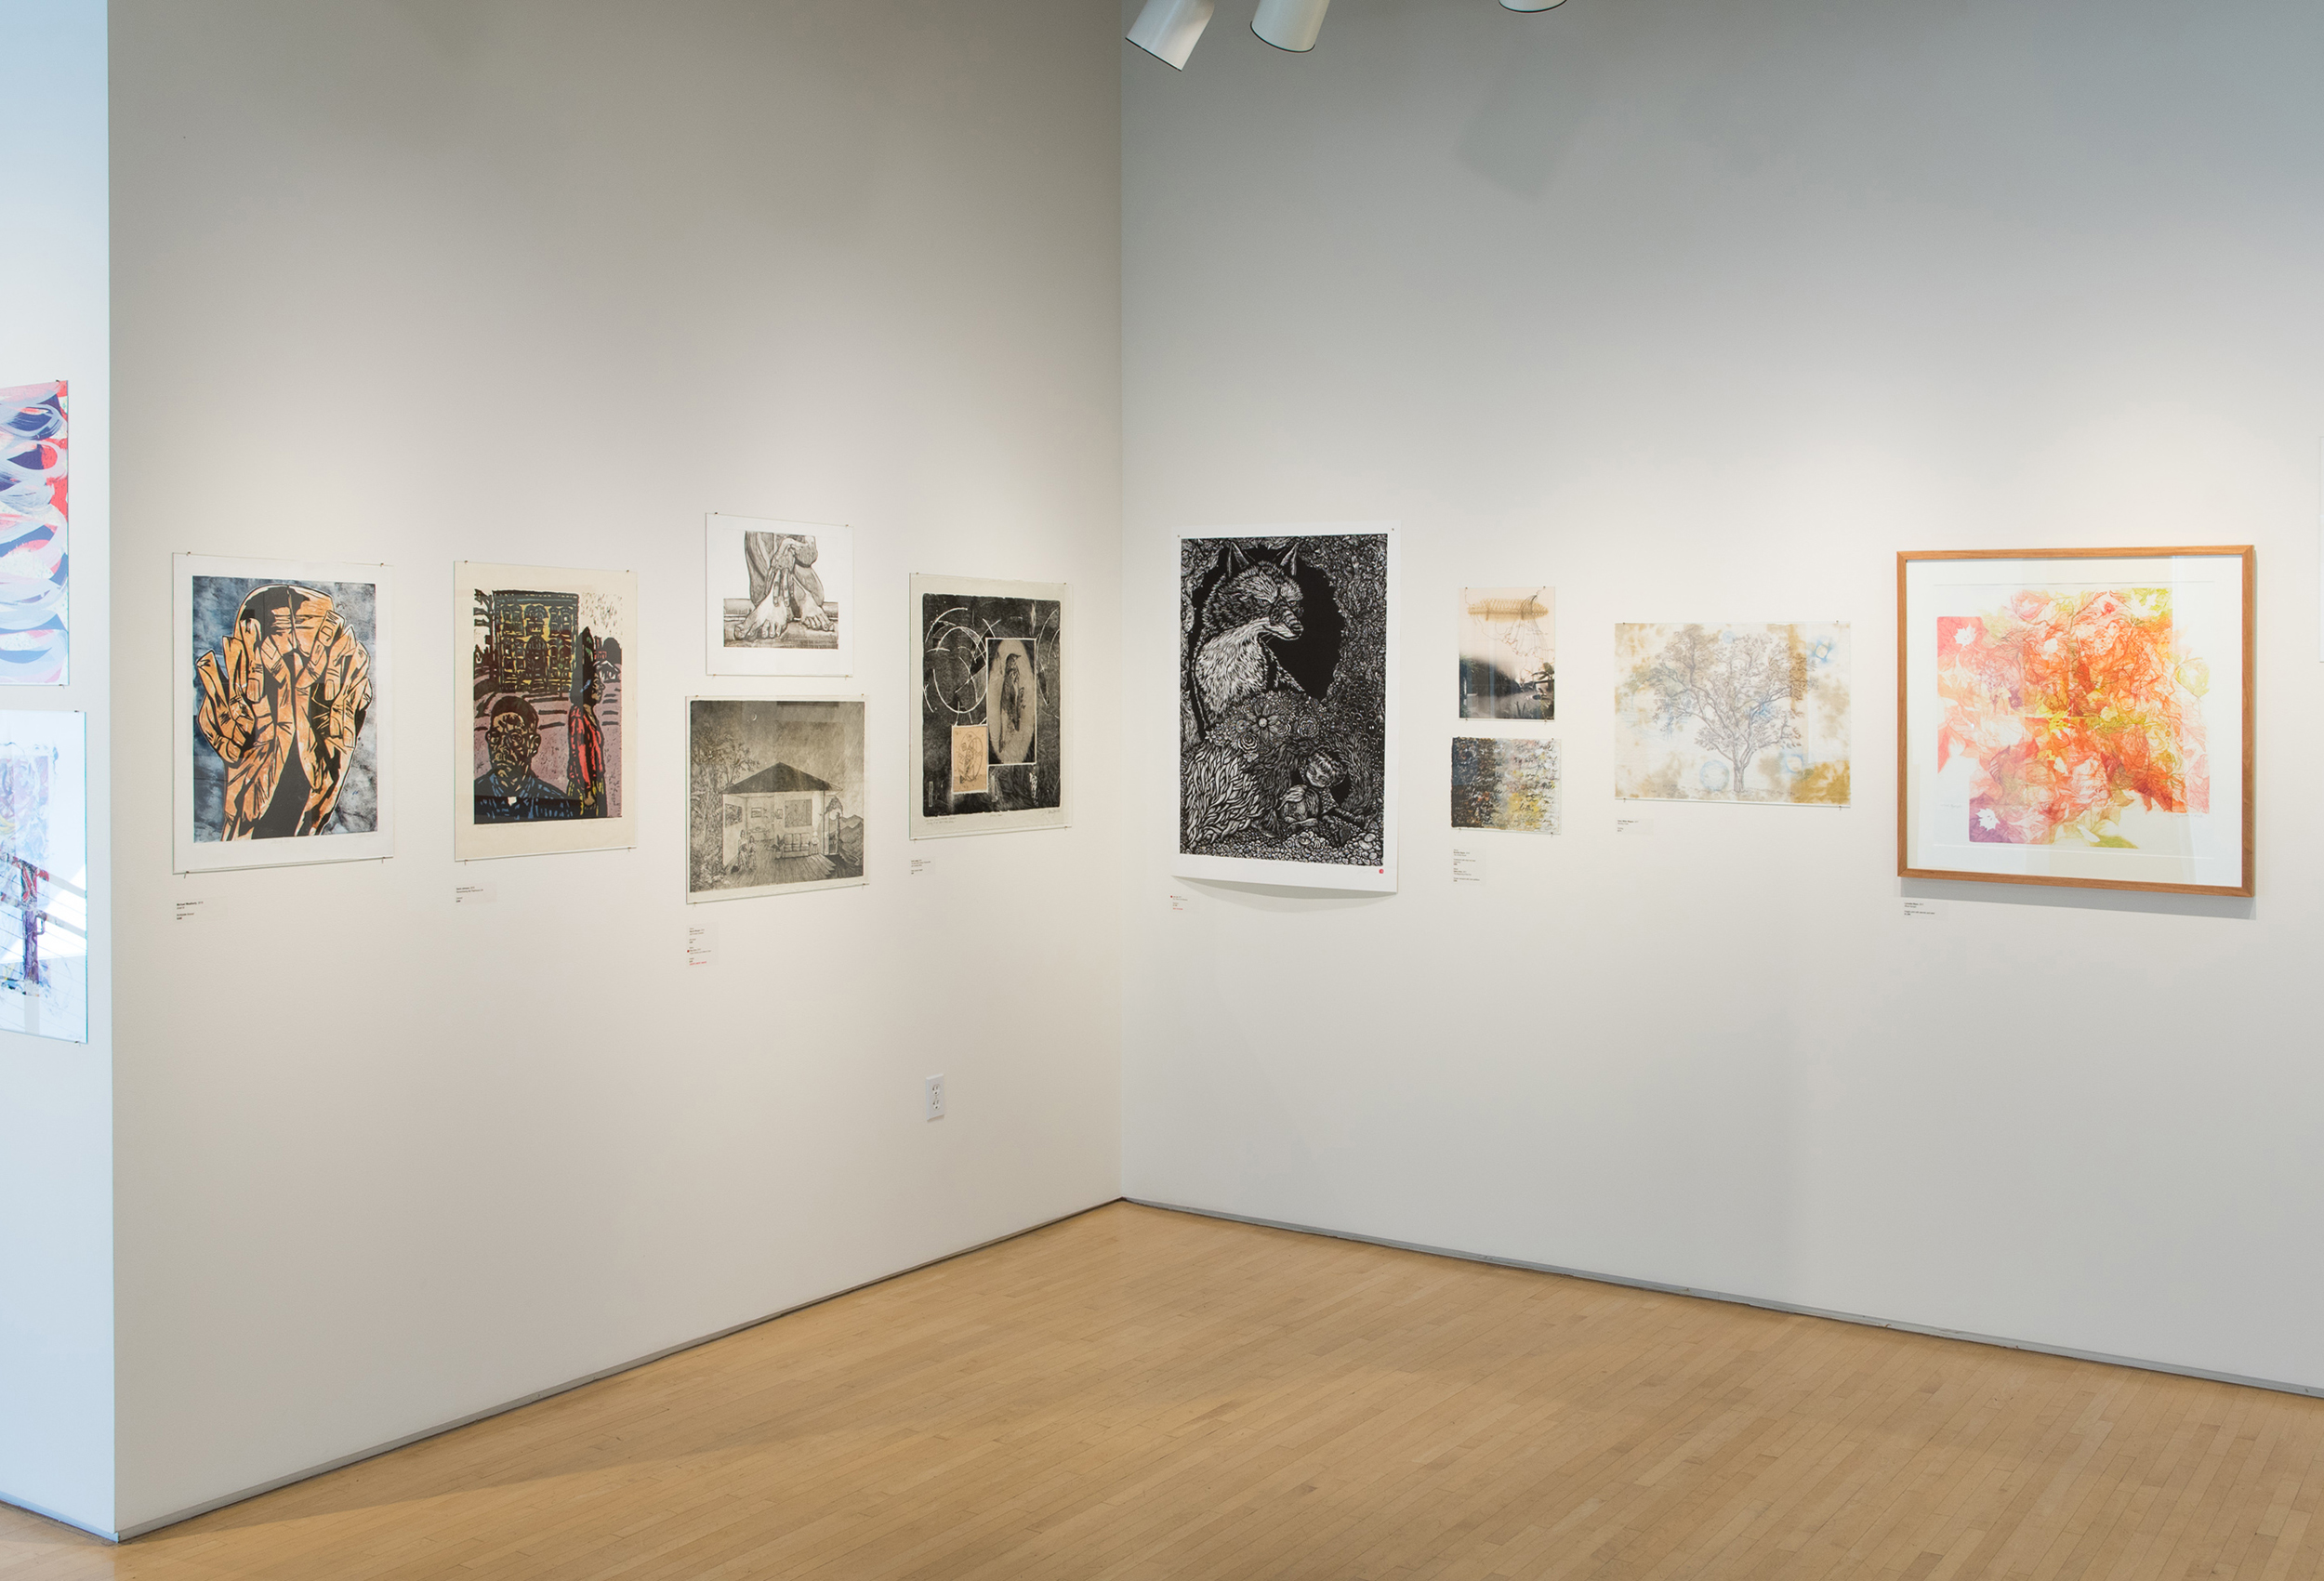 Highpoint PrintmakingStand Out Prints Exhibit180927a0291.JPG